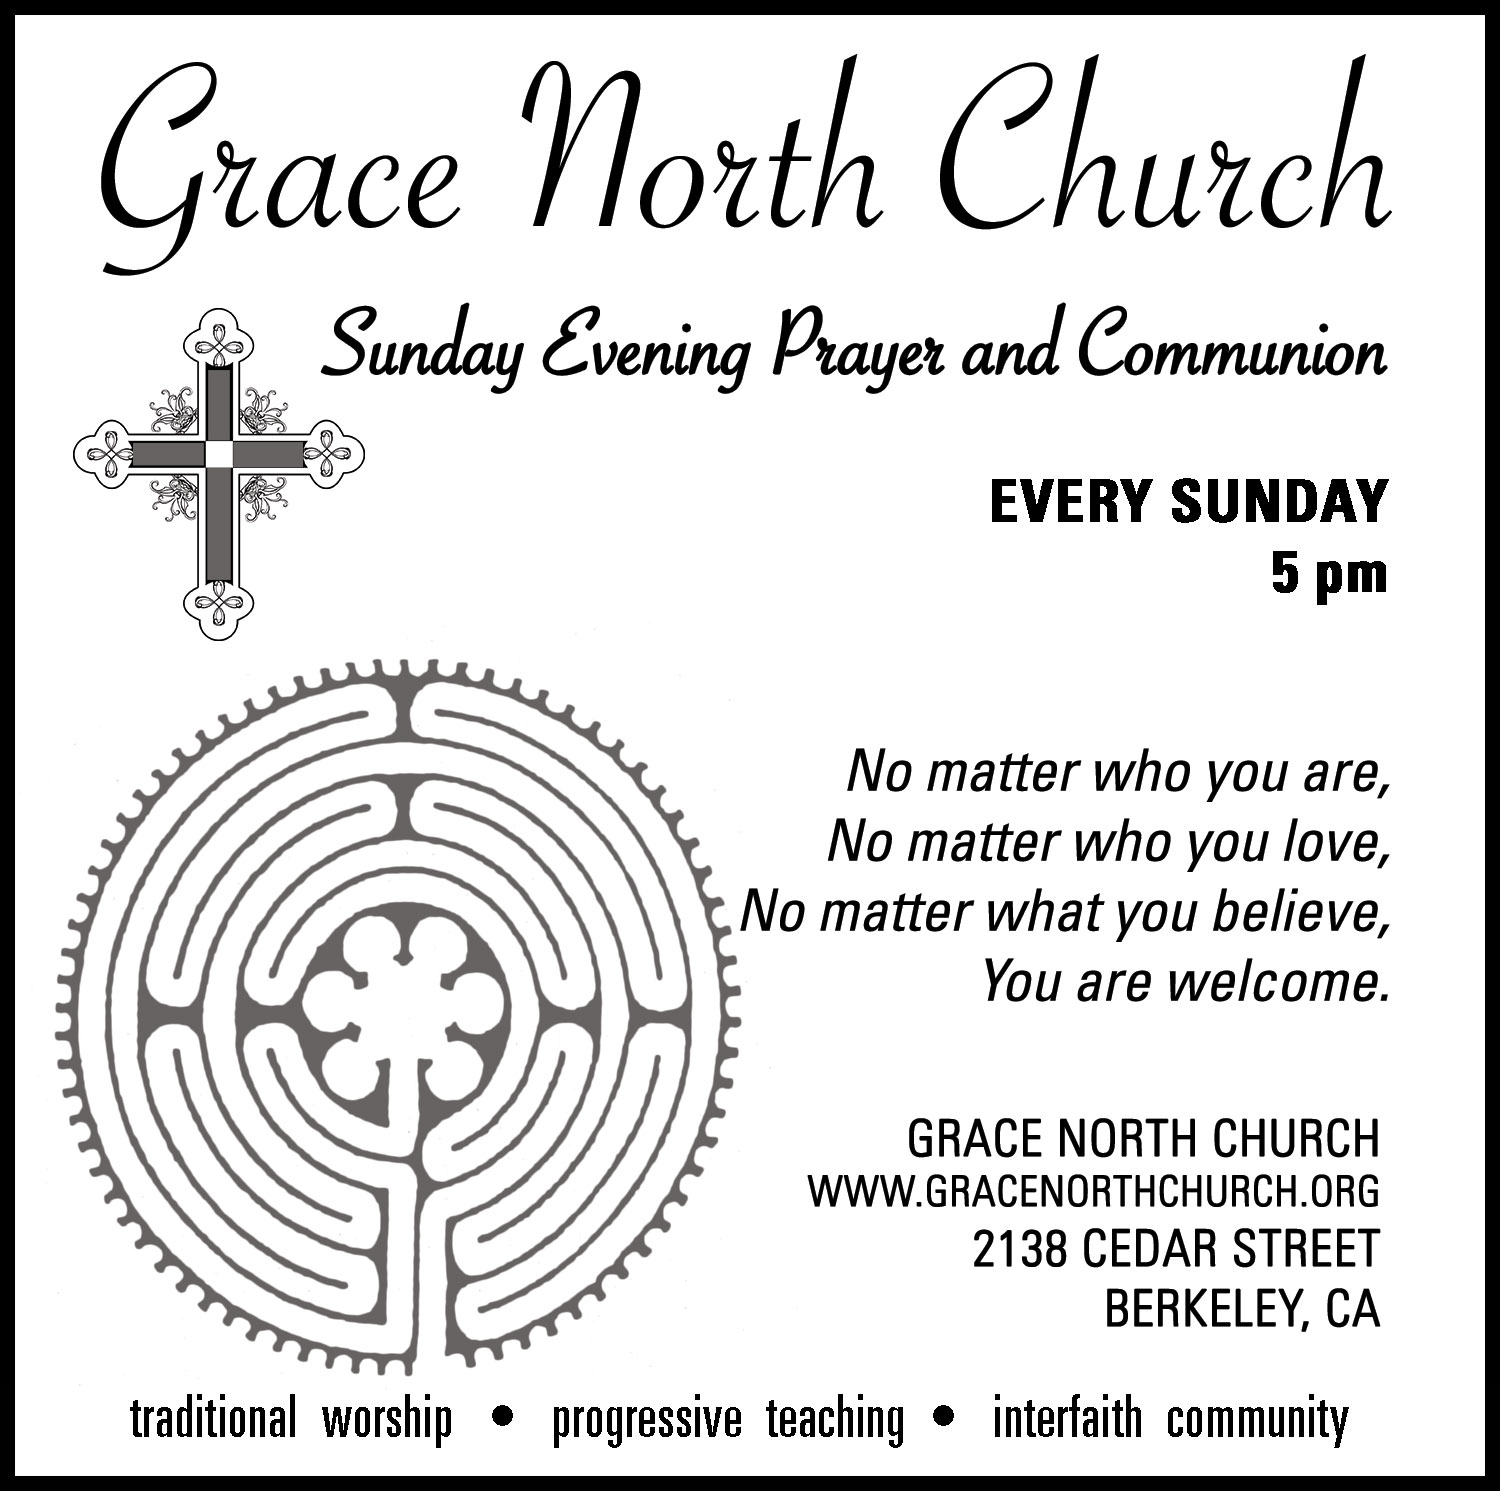 Grace North Church